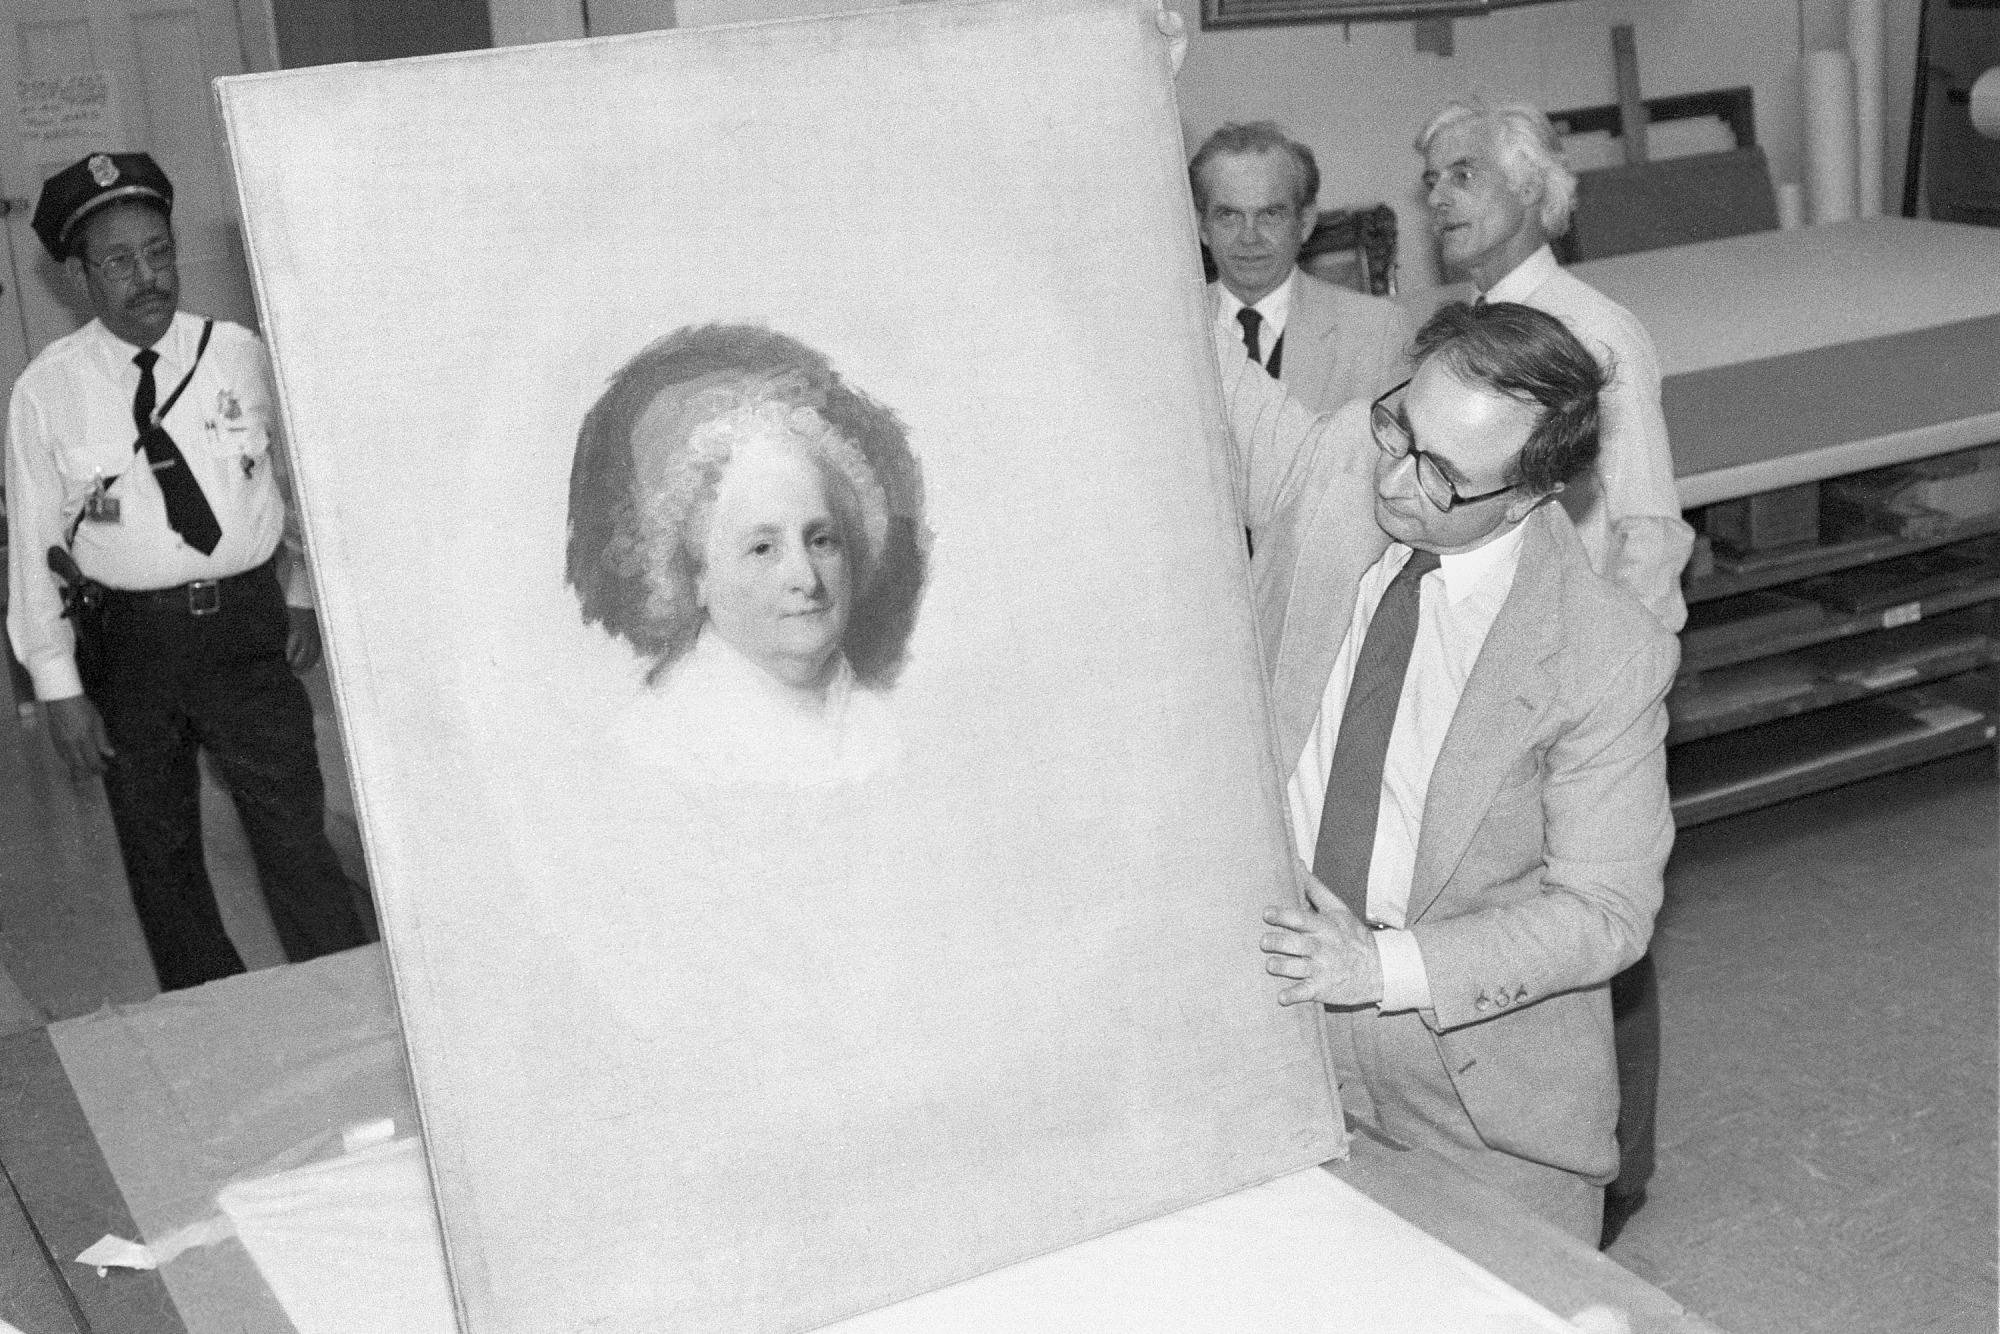 Marvin Sadik Examines Martha Washington Portrait